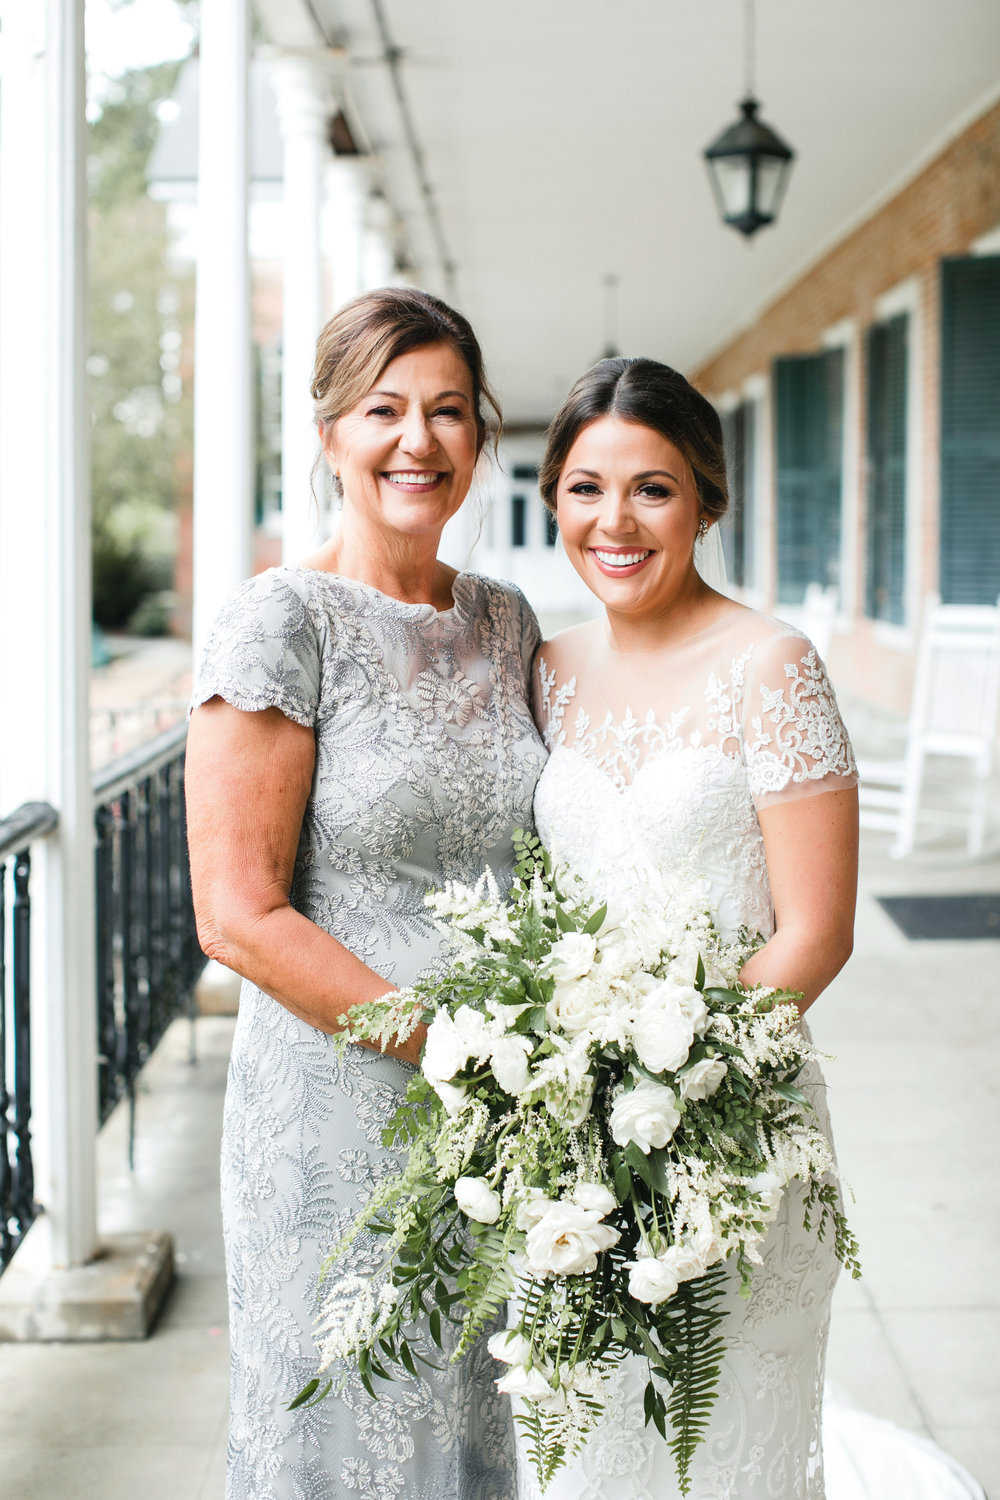 Daigle_Lafayette_Louisiana_Wedding_Planner-0204.jpg